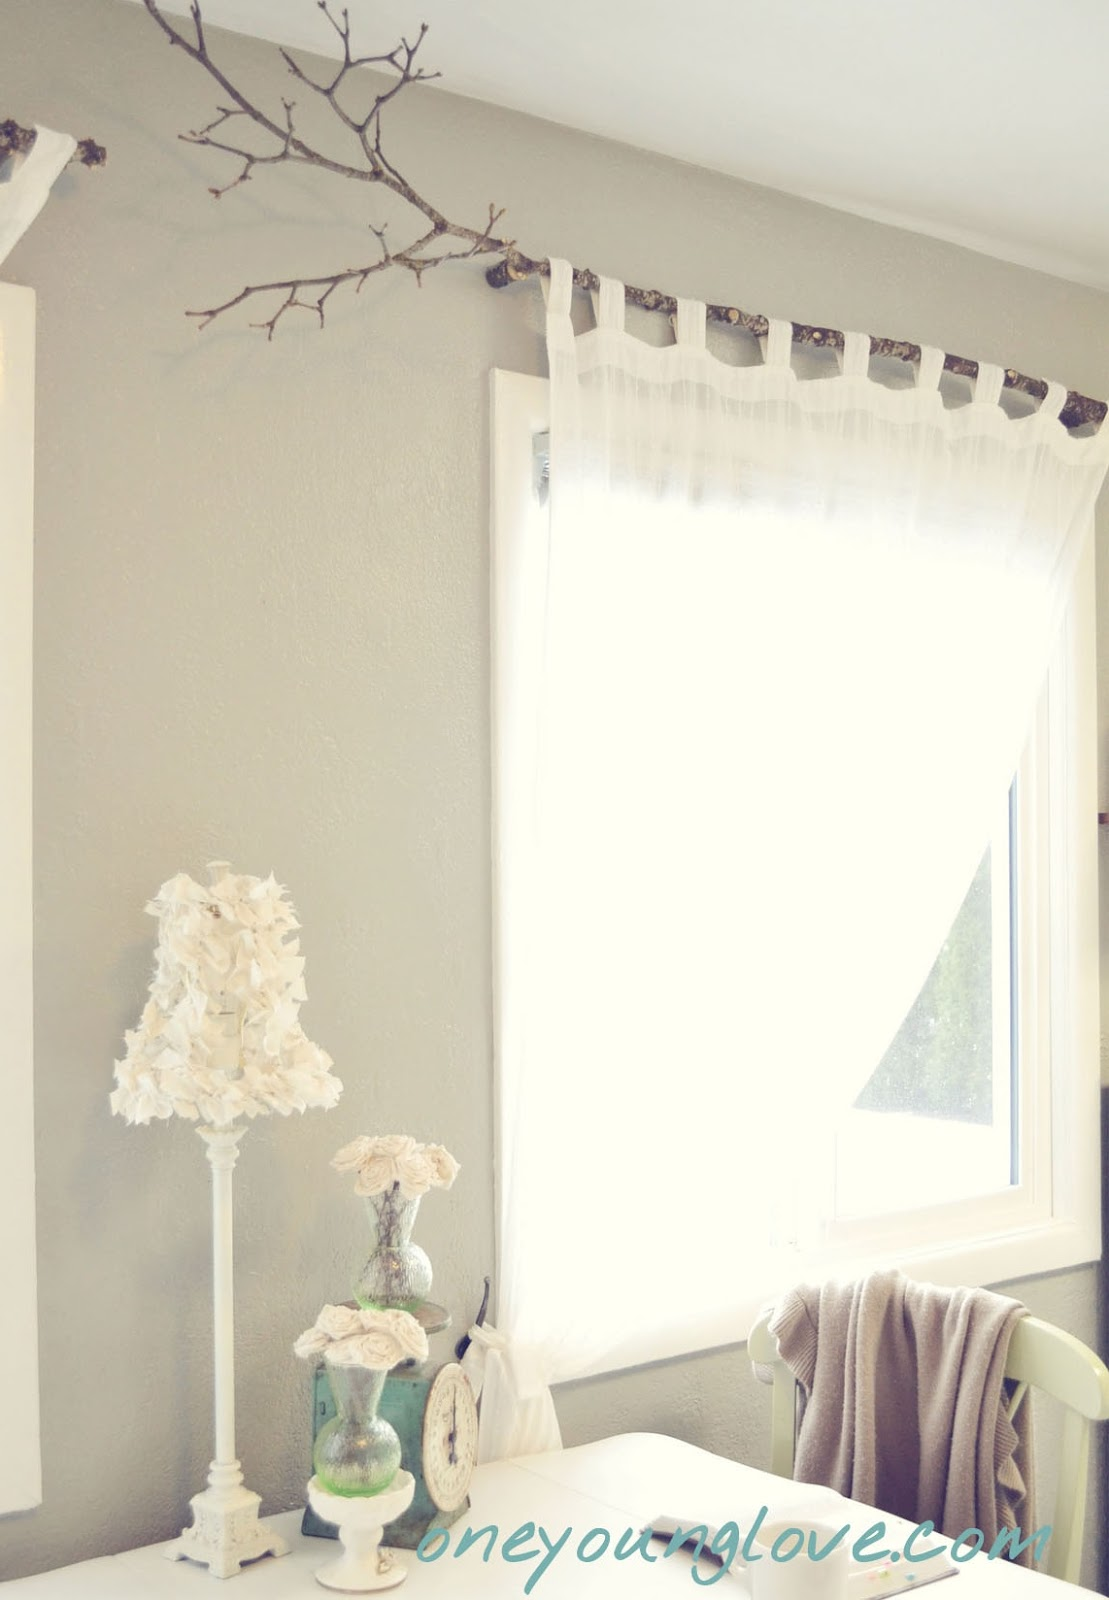 Unique window treatments - Branches Are Always Fun Curtain Rods